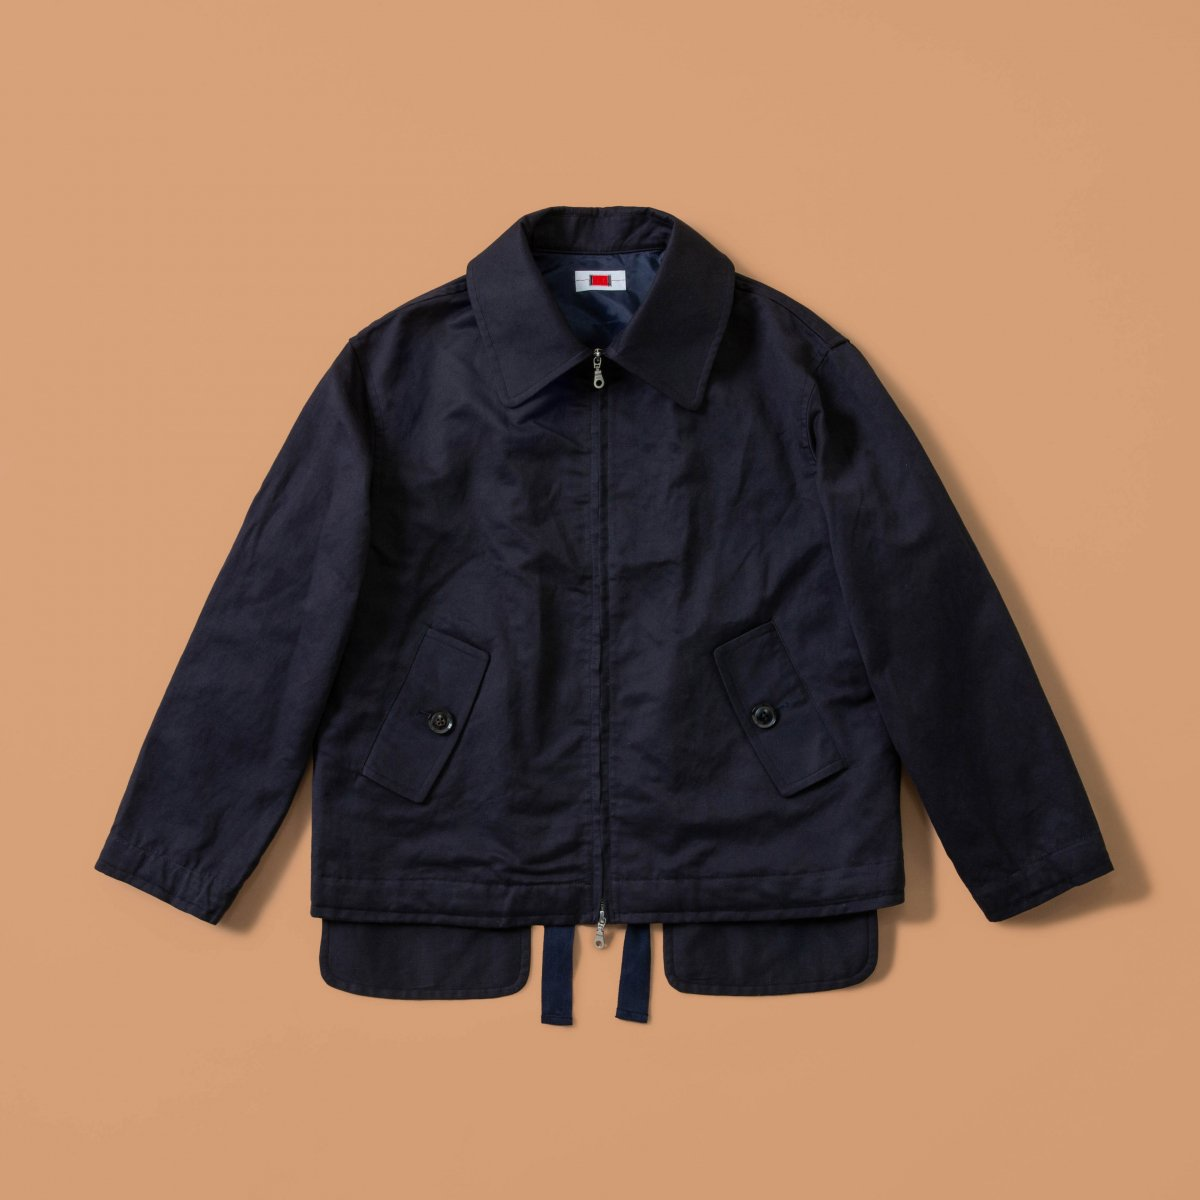 <img class='new_mark_img1' src='https://img.shop-pro.jp/img/new/icons5.gif' style='border:none;display:inline;margin:0px;padding:0px;width:auto;' />EMPTY BLOUSON / NAVY